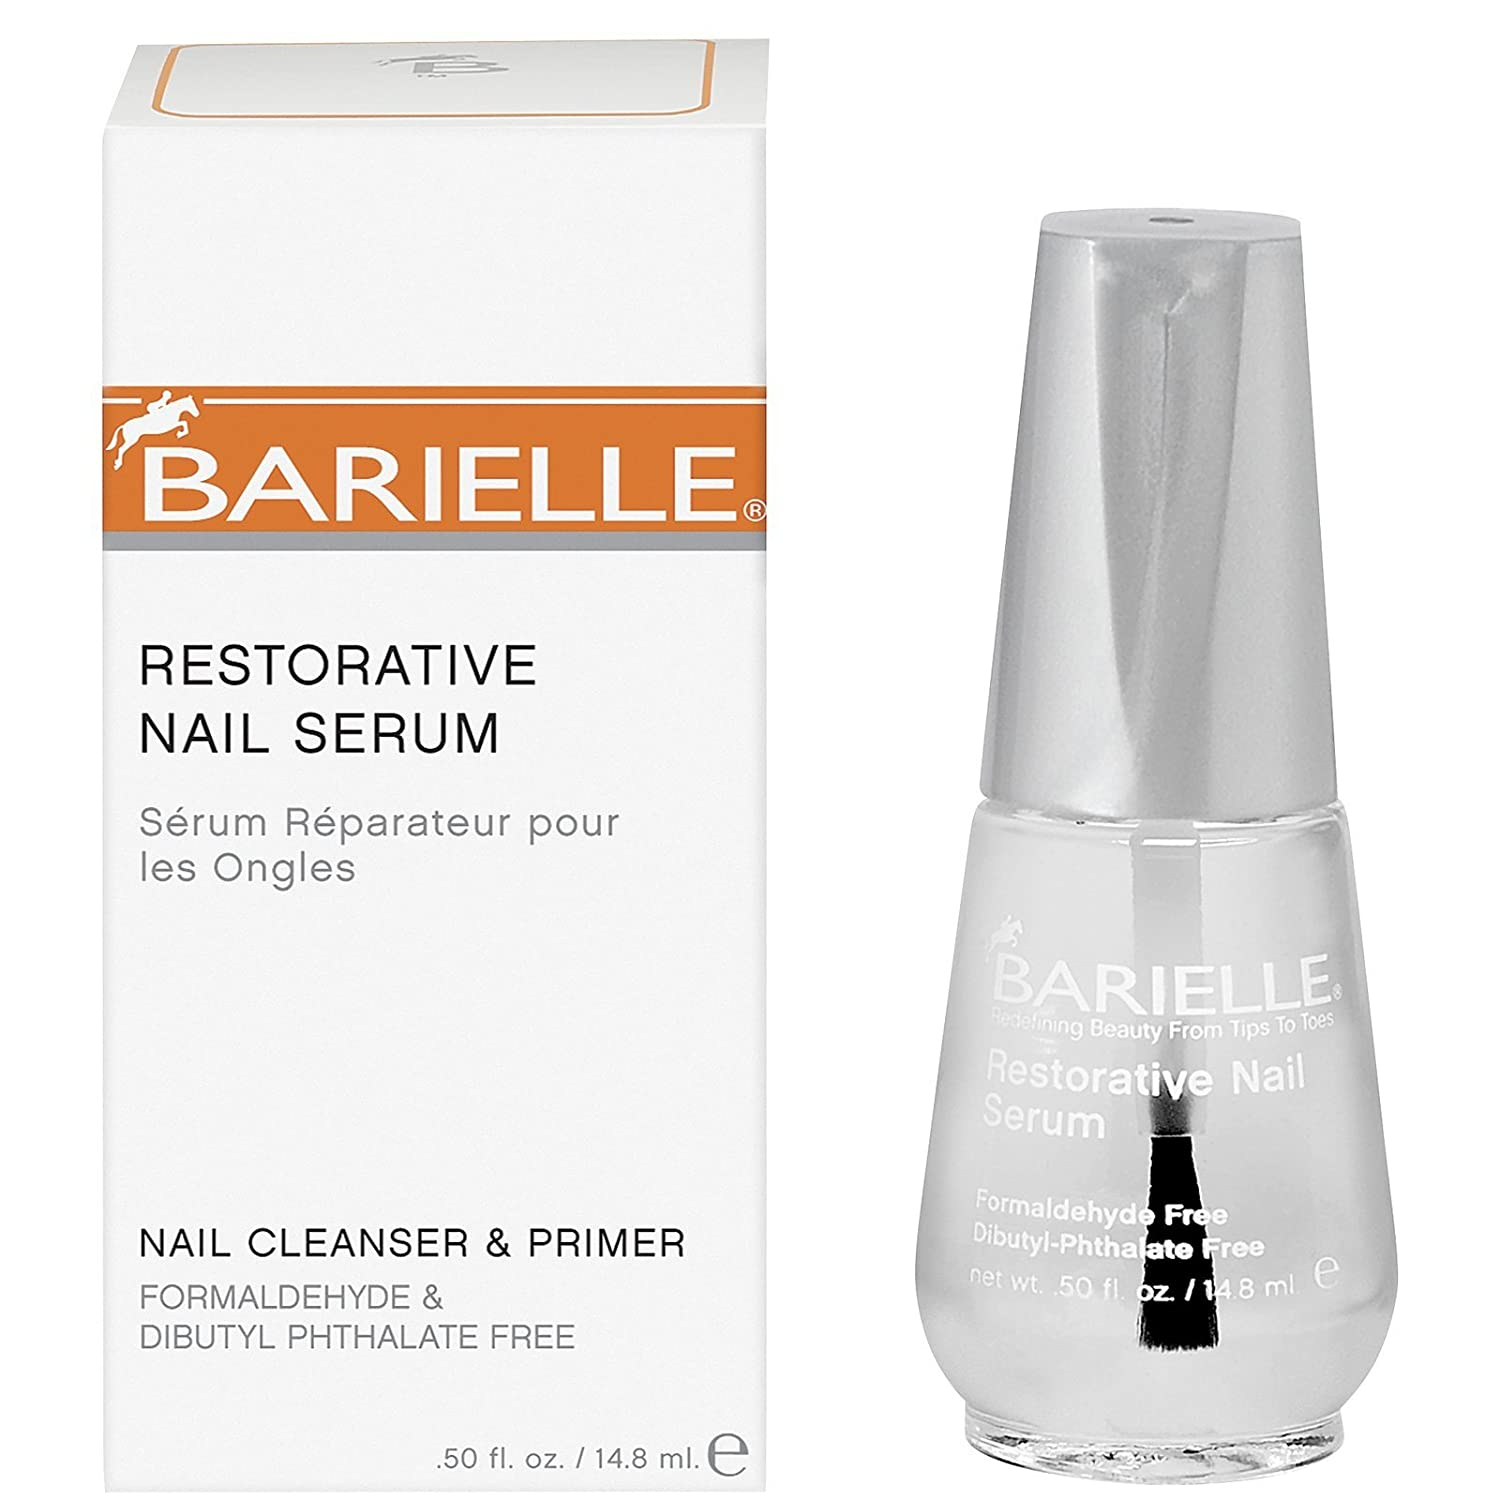 Barielle Restorative Nail Serum 0.5 Fluid Ounces